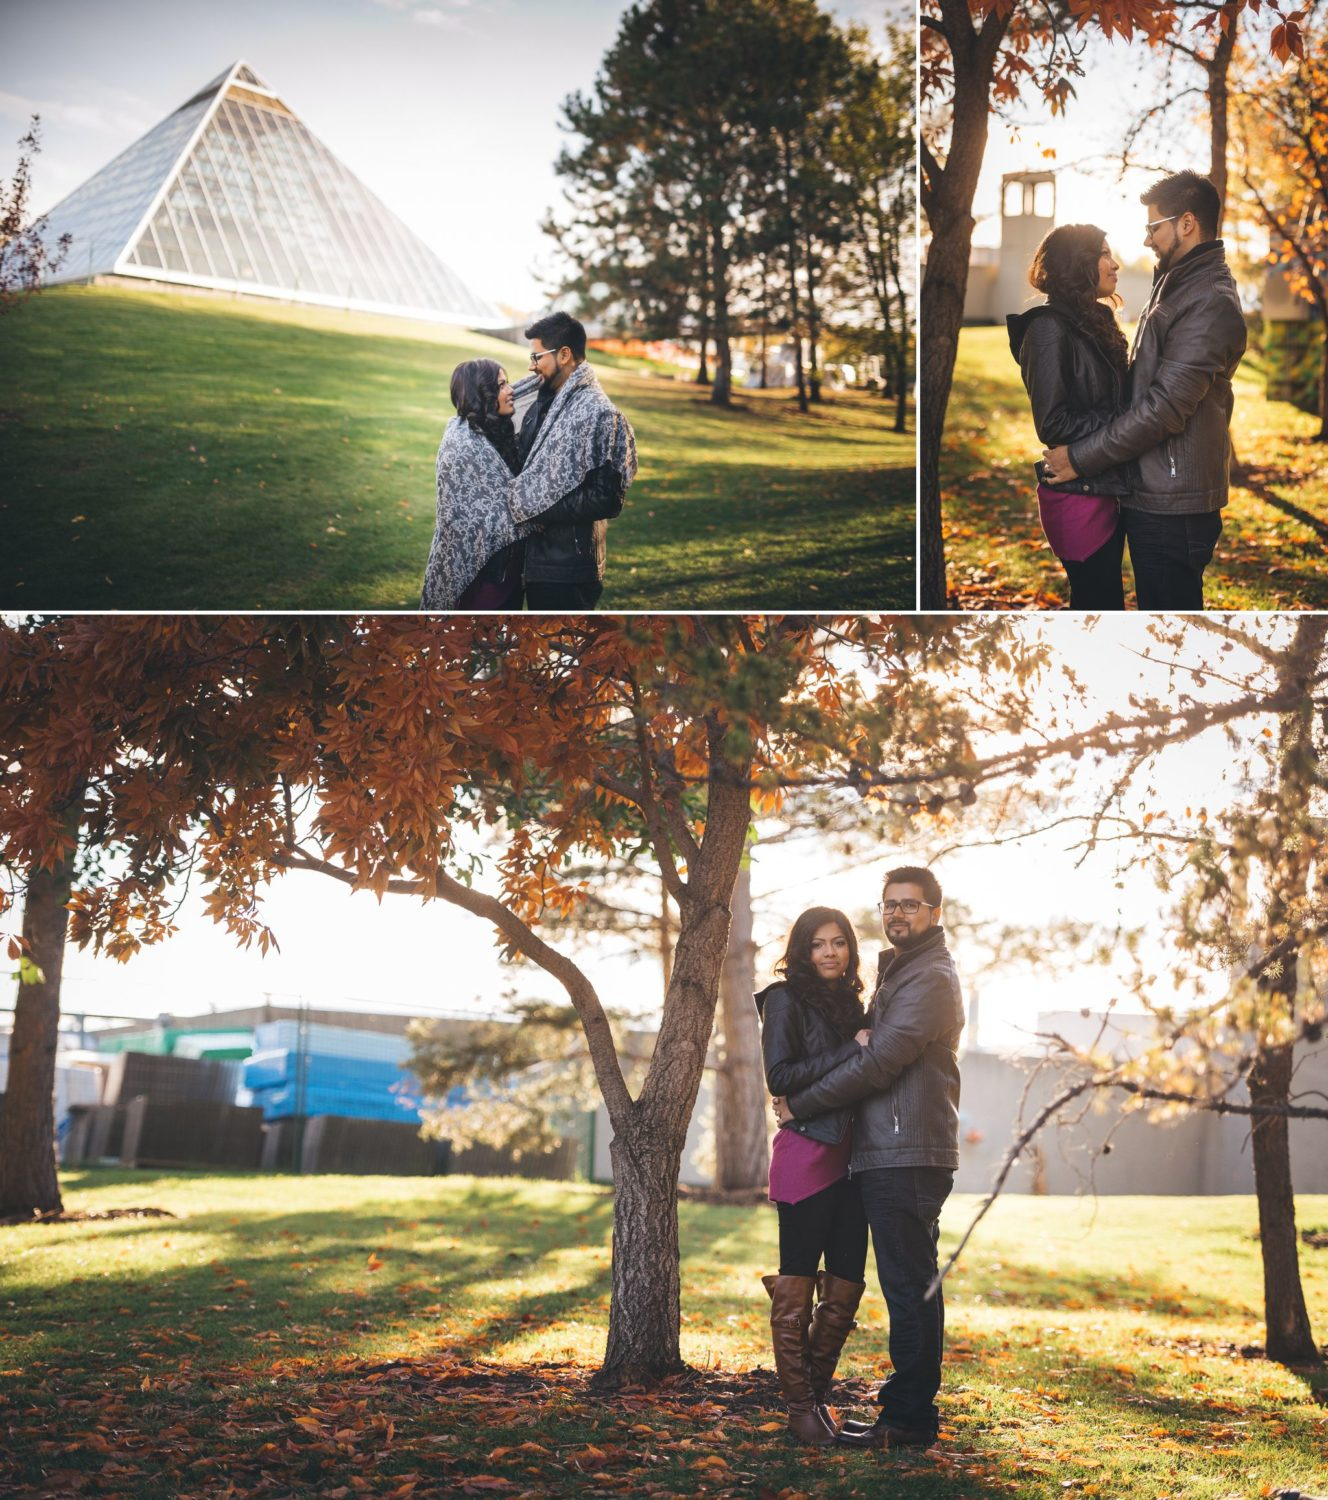 edmonton-wedding-photographers-box-cube-photograph-zubair-amara-engagement 2